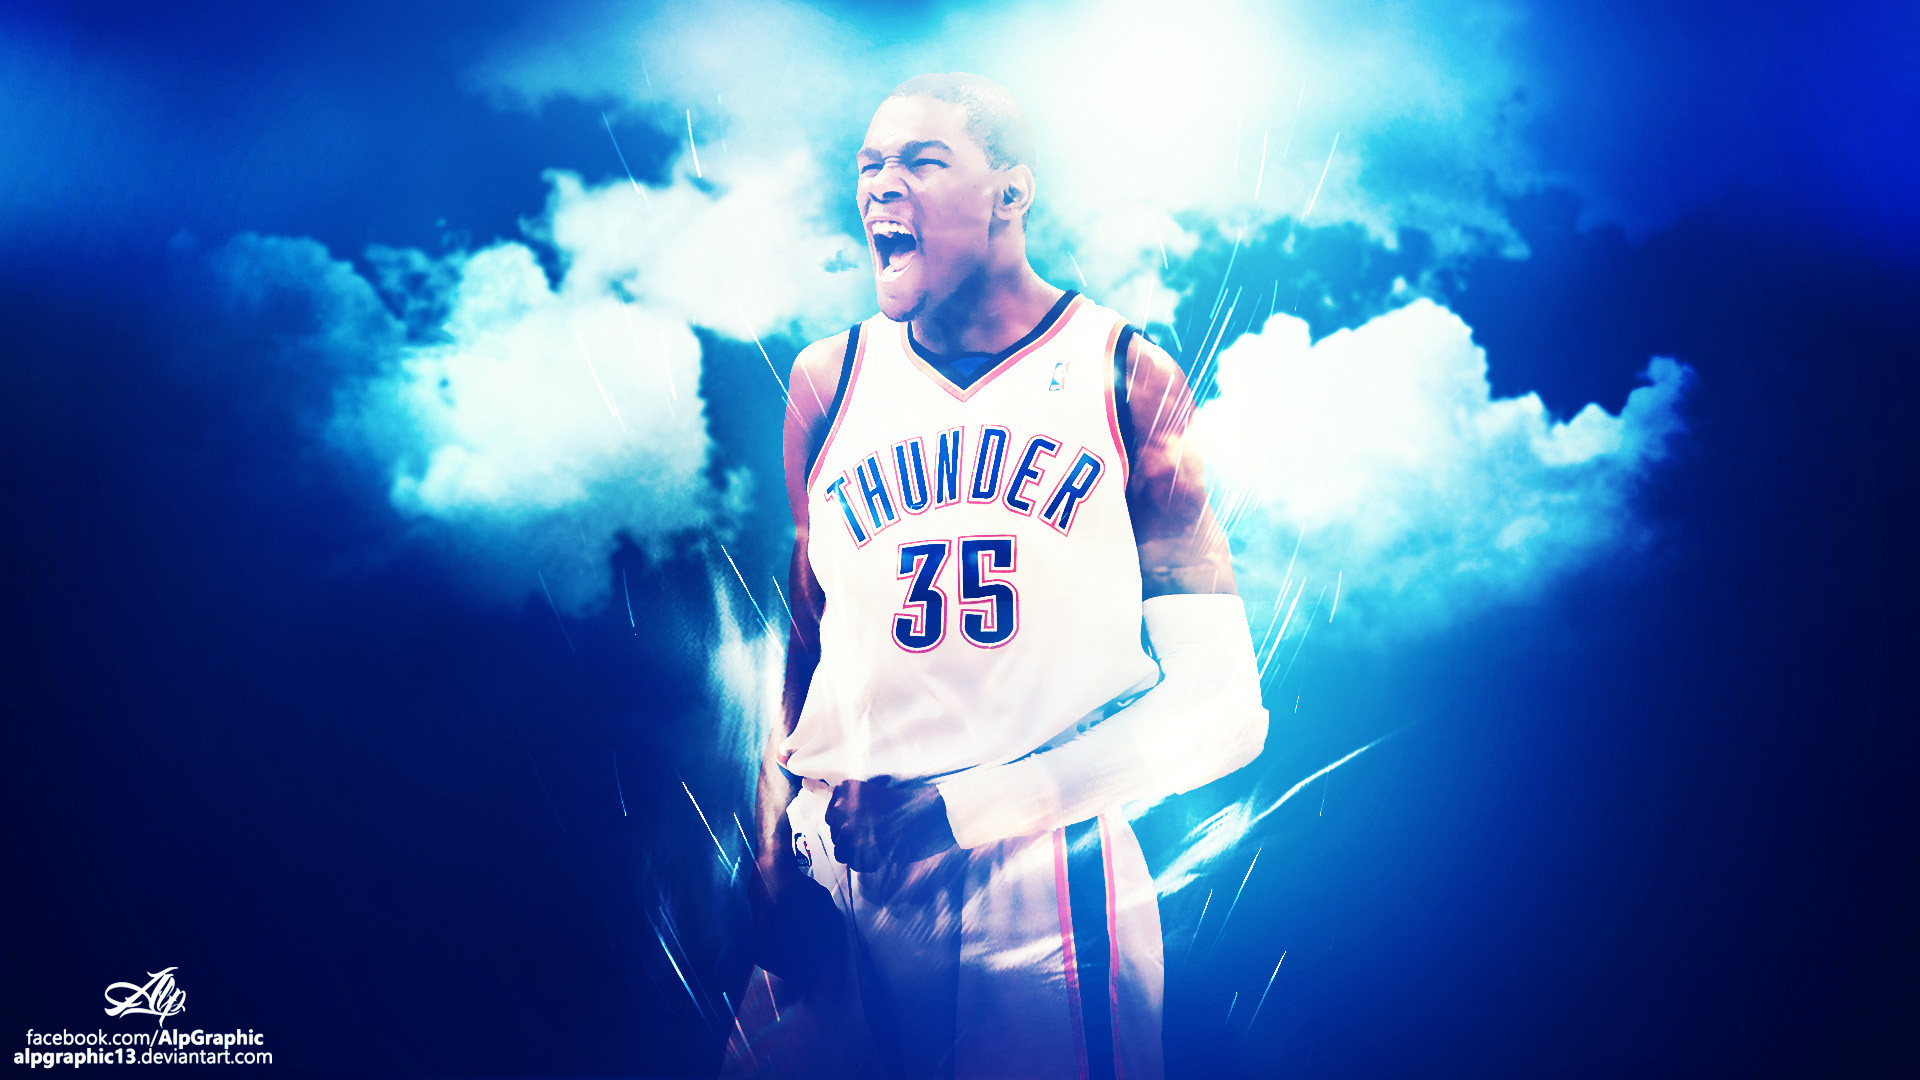 1920x1080 Kevin Durant Wallpapers High Resolution and Quality Download